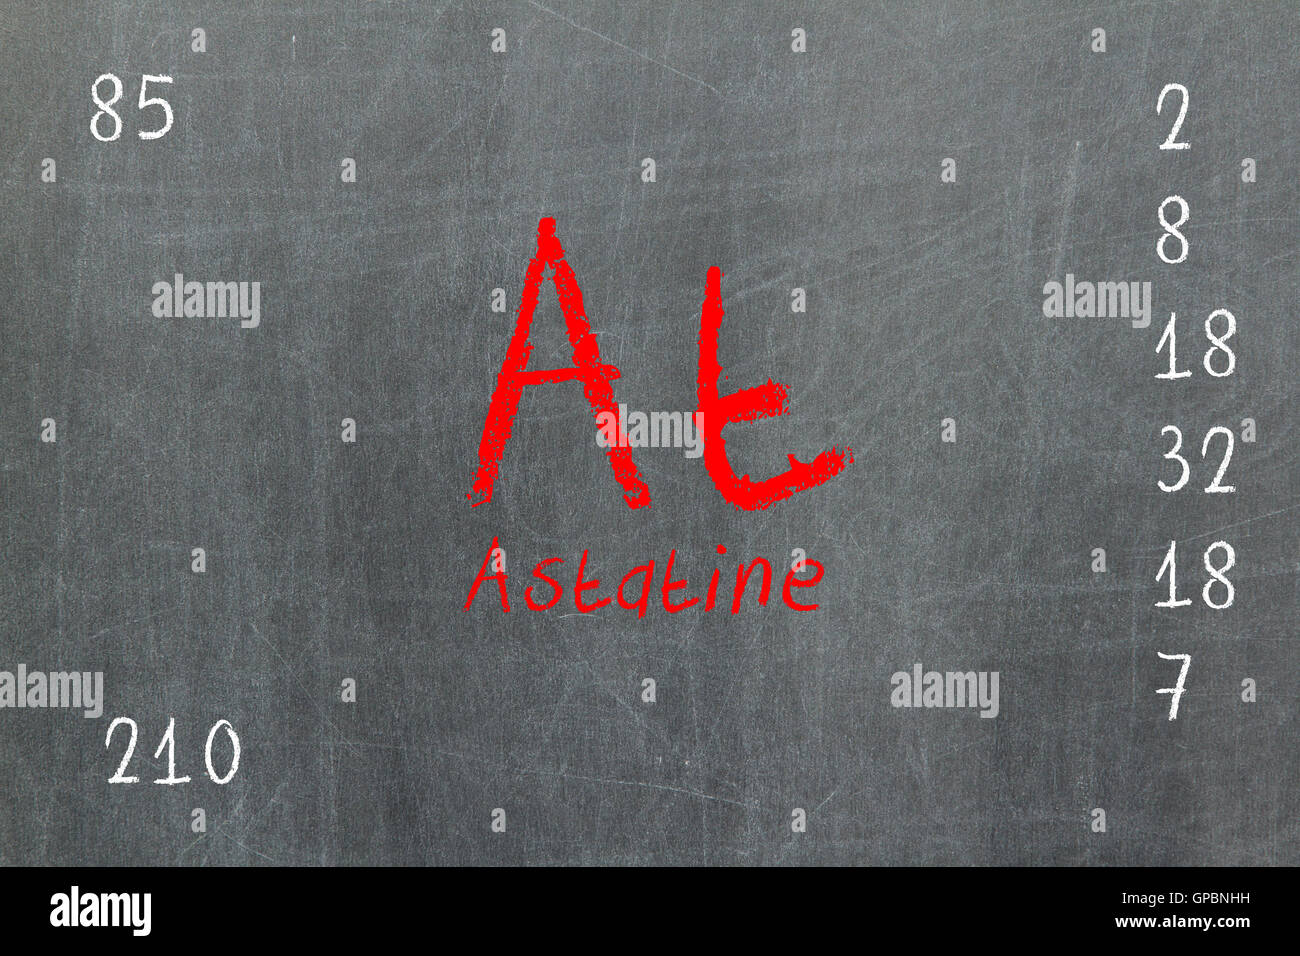 Isolated blackboard with periodic table astatine stock photo isolated blackboard with periodic table astatine urtaz Gallery